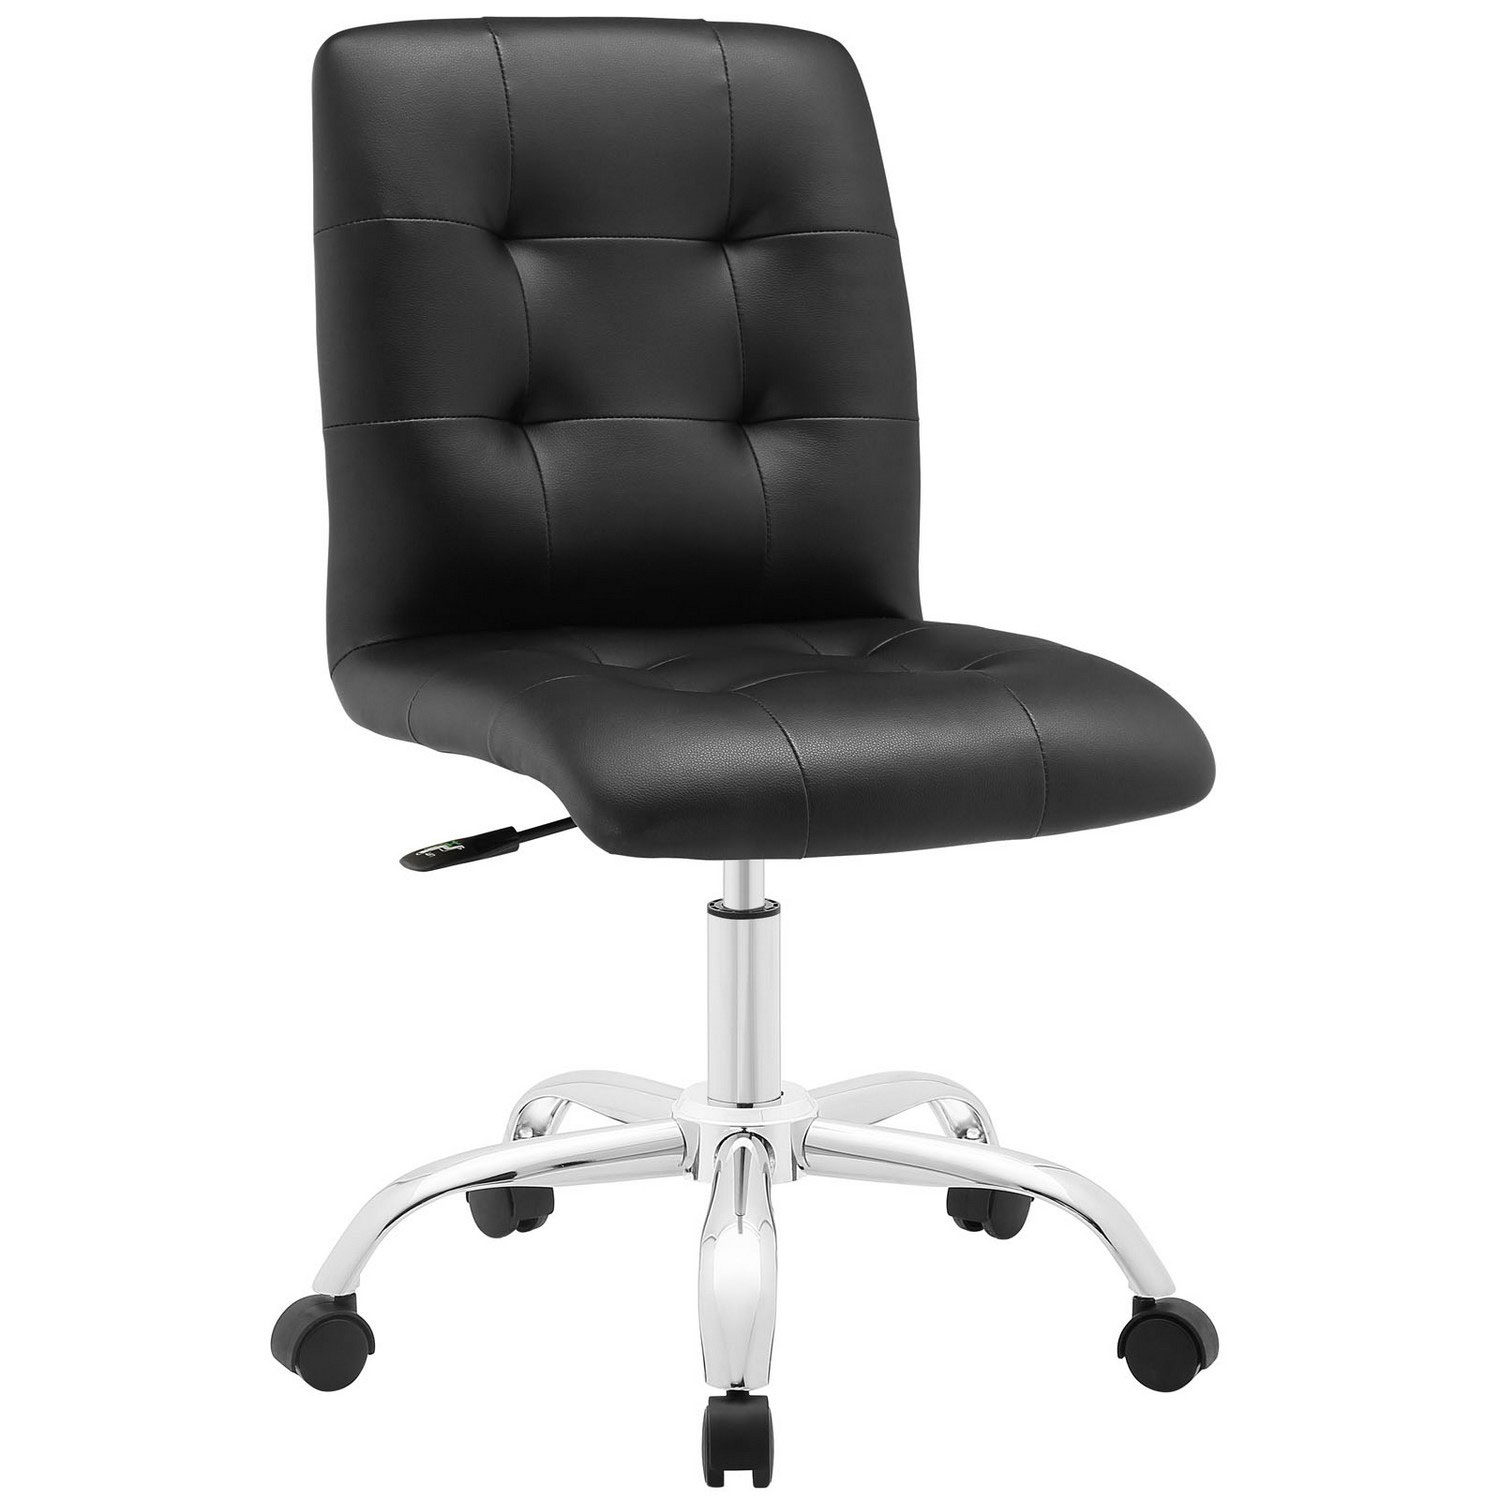 Modway Prim Armless Mid Back Office Chair - Black